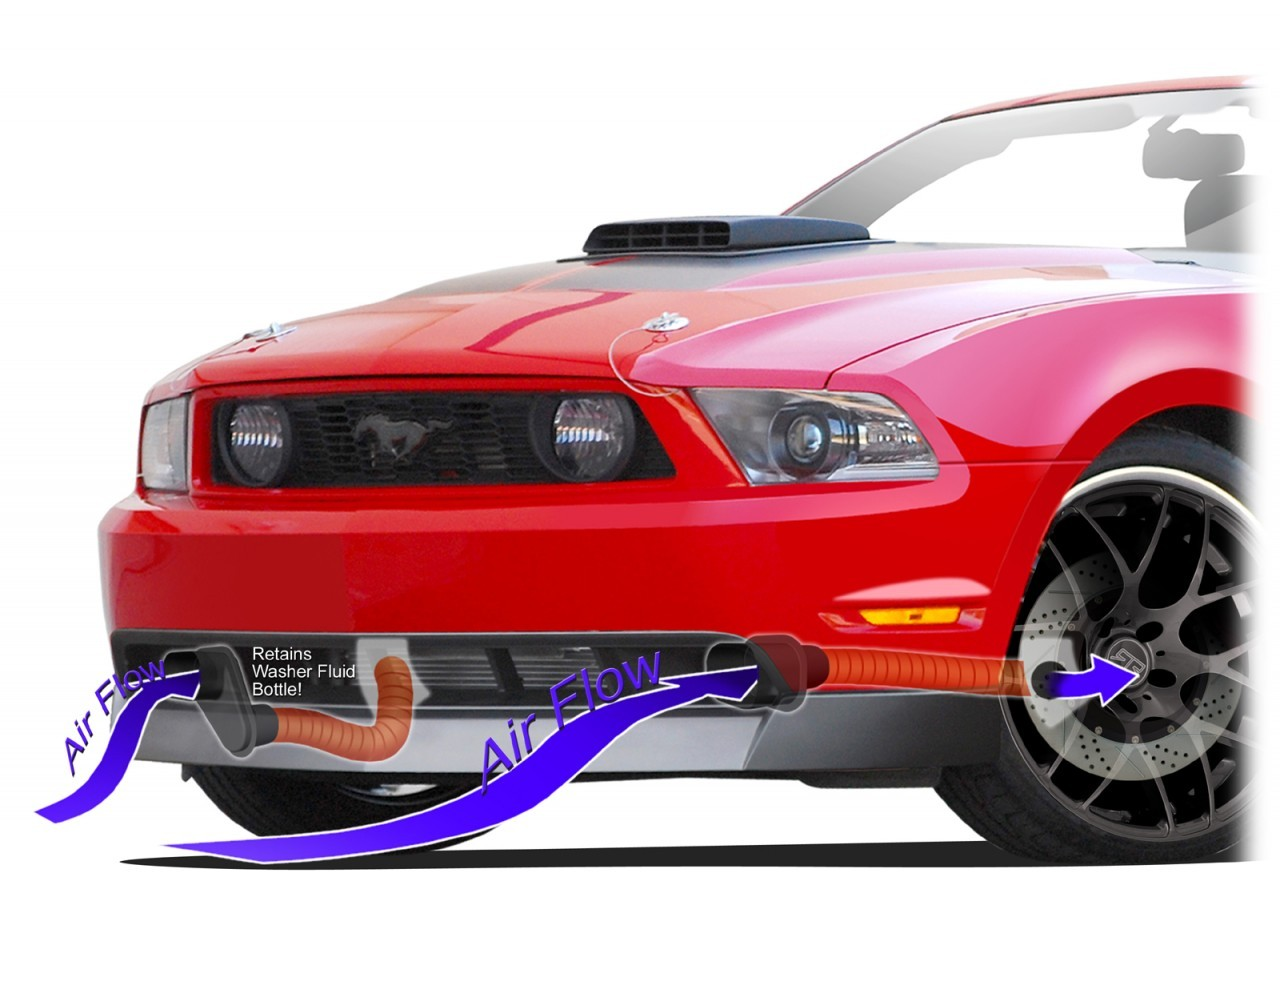 2010-2012 Mustang Chin Spoiler Brake Duct Kit for CDC Chin Spoiler